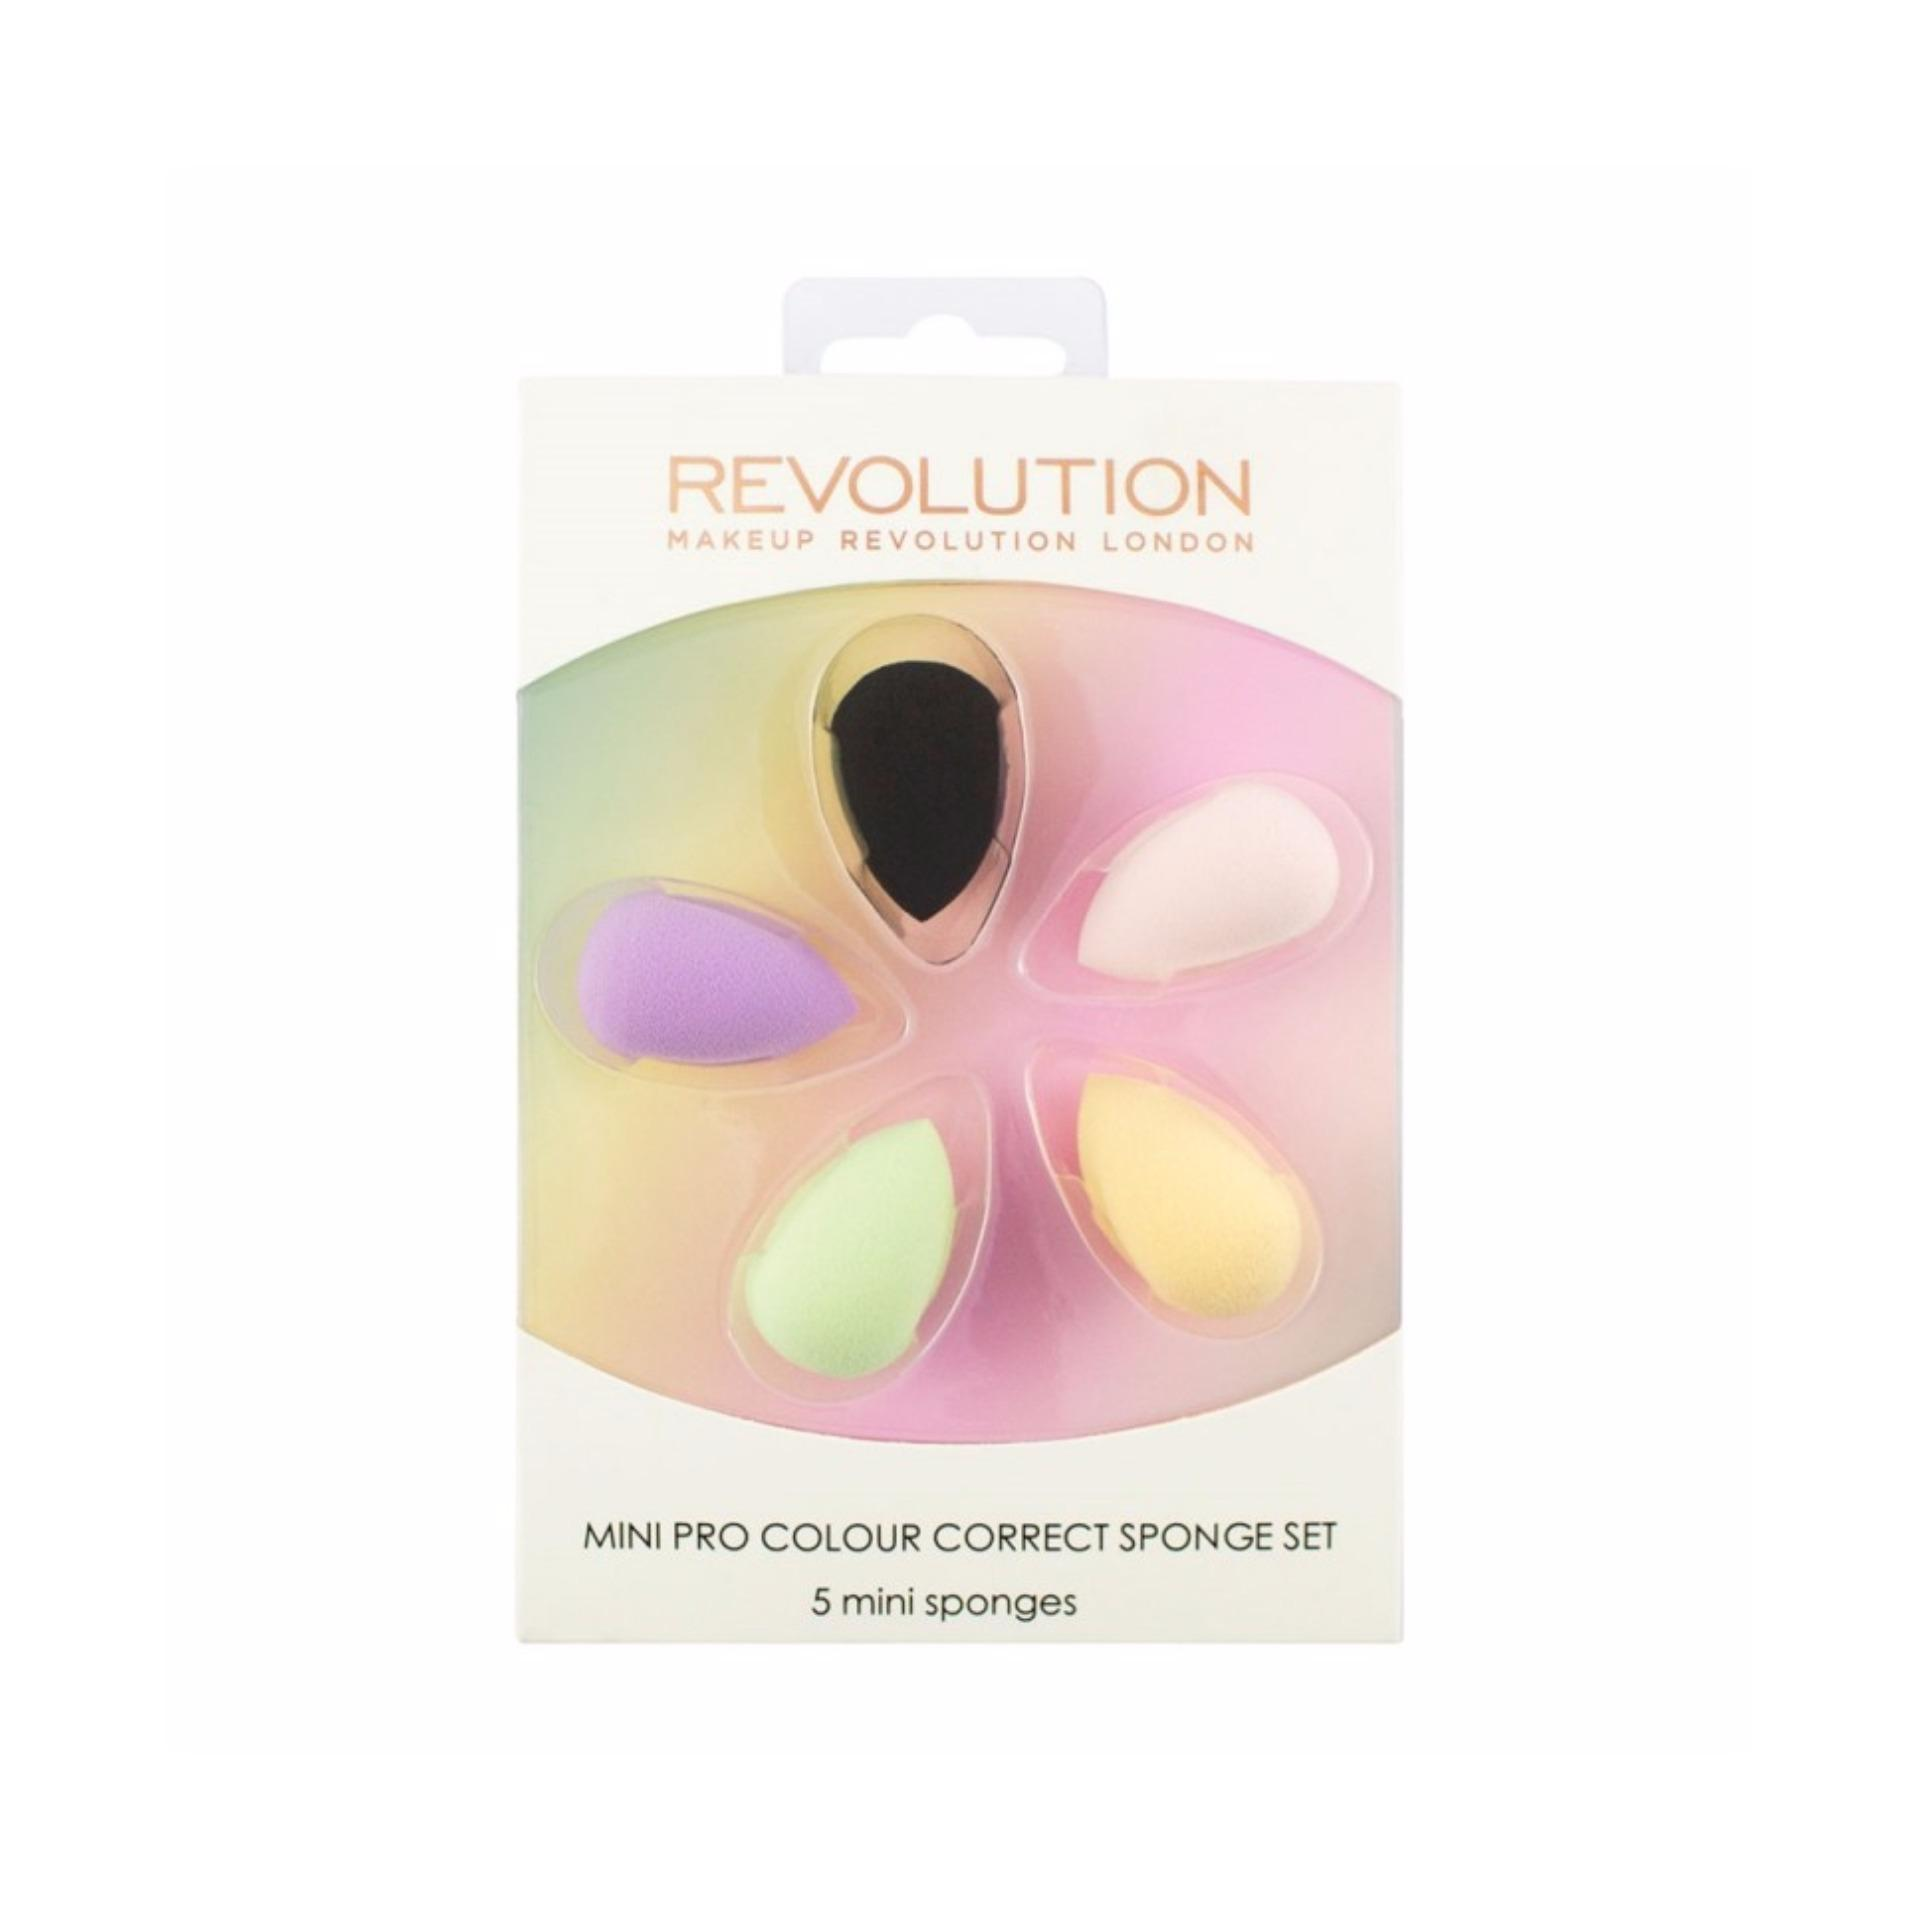 MAKEUP REVOLUTION MINI PRO COLOUR CORRECT SPONGE SET